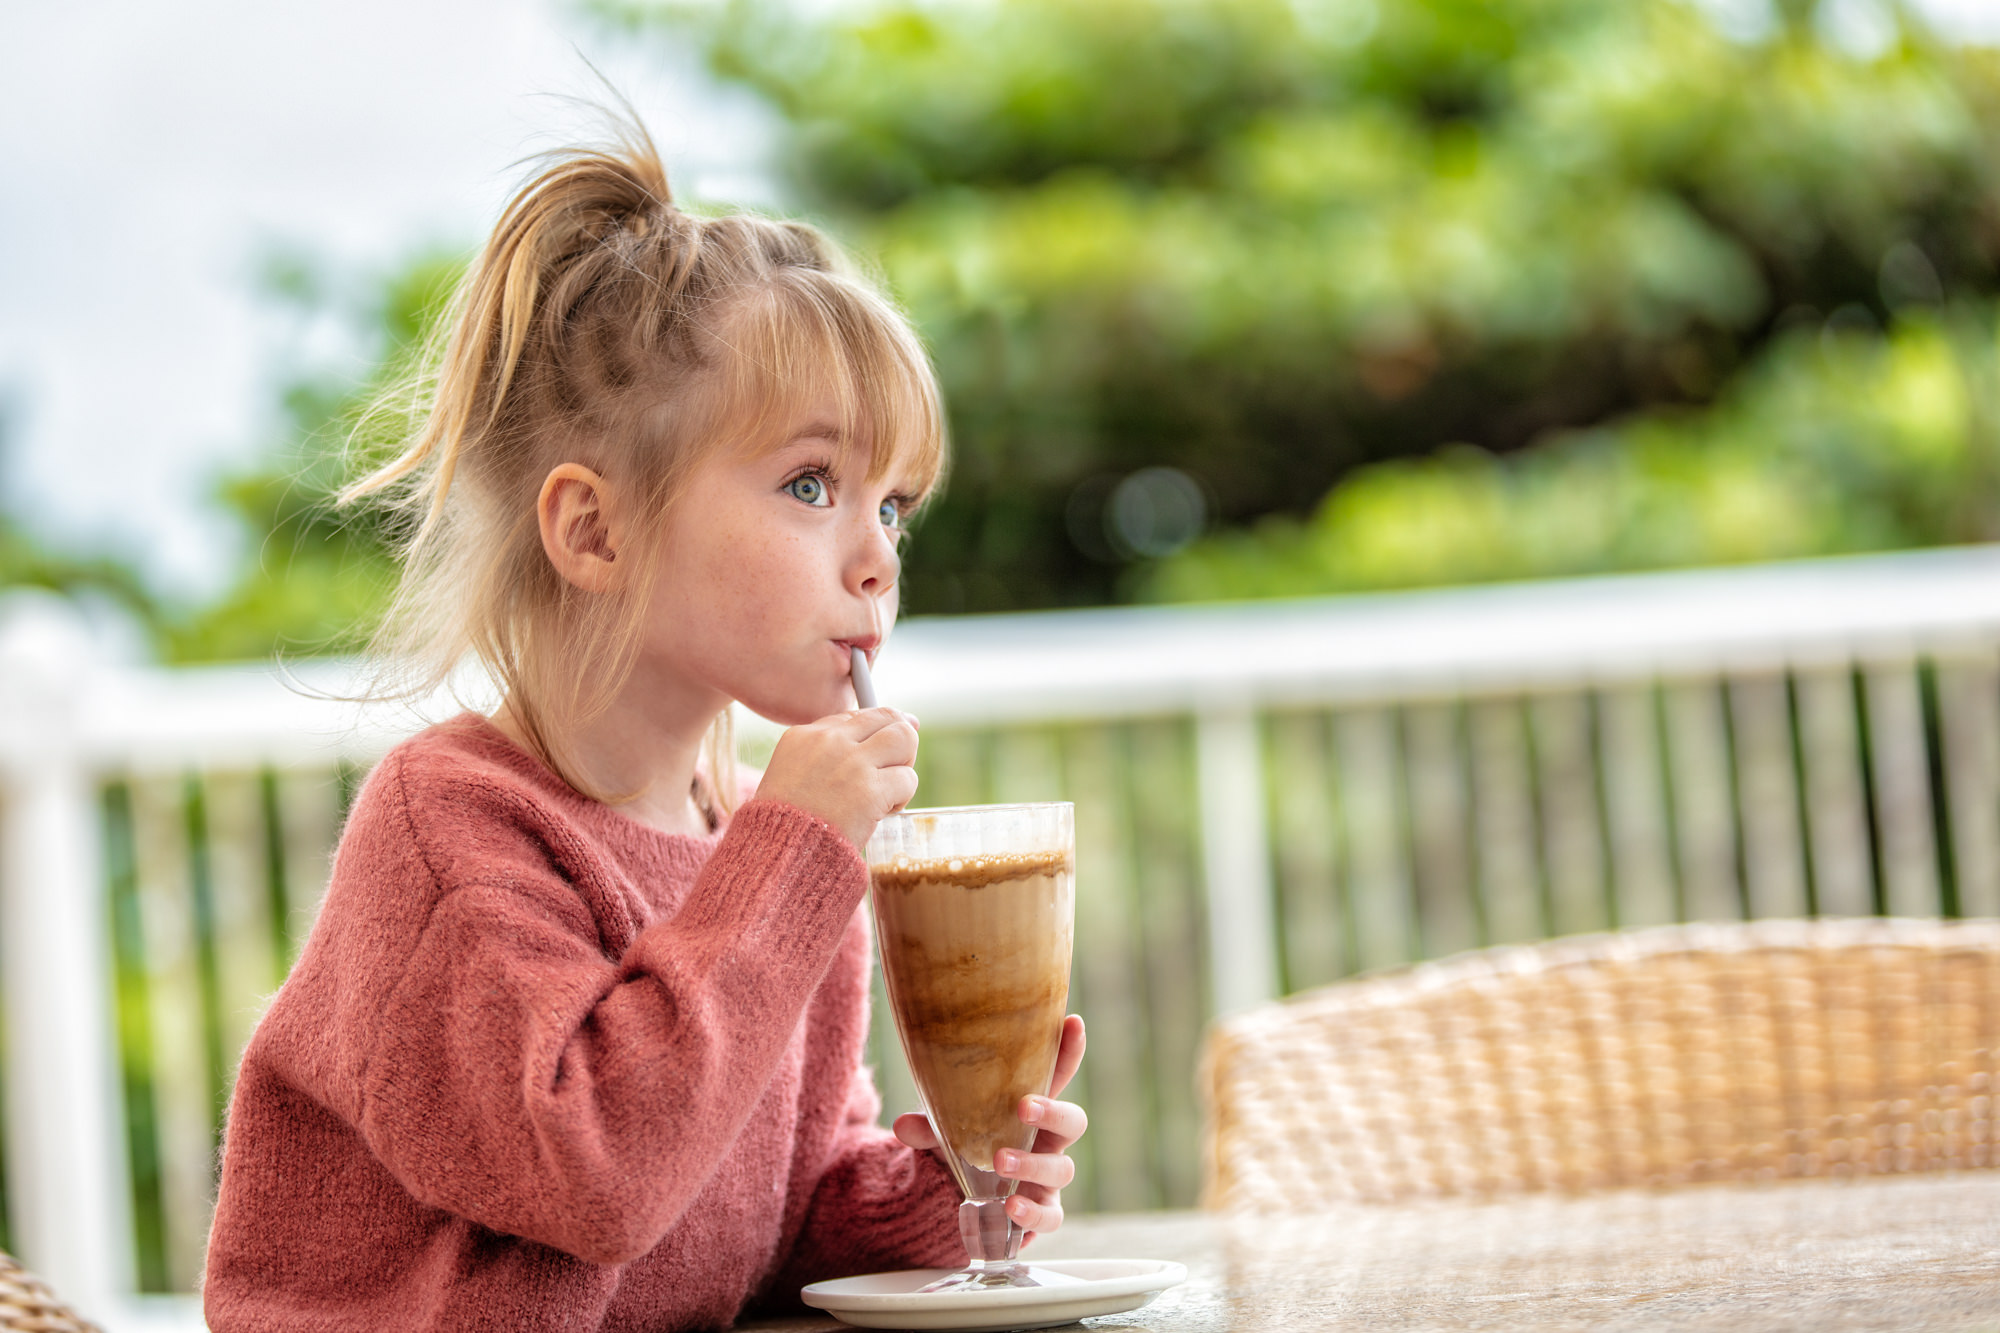 Image of girl drinking a milkshake at the Beverly Hills Hotel in uMhlanga Rocks, Durban for  Tsogo Sun's Image Library & Content Library by Michelle Wastie Photography